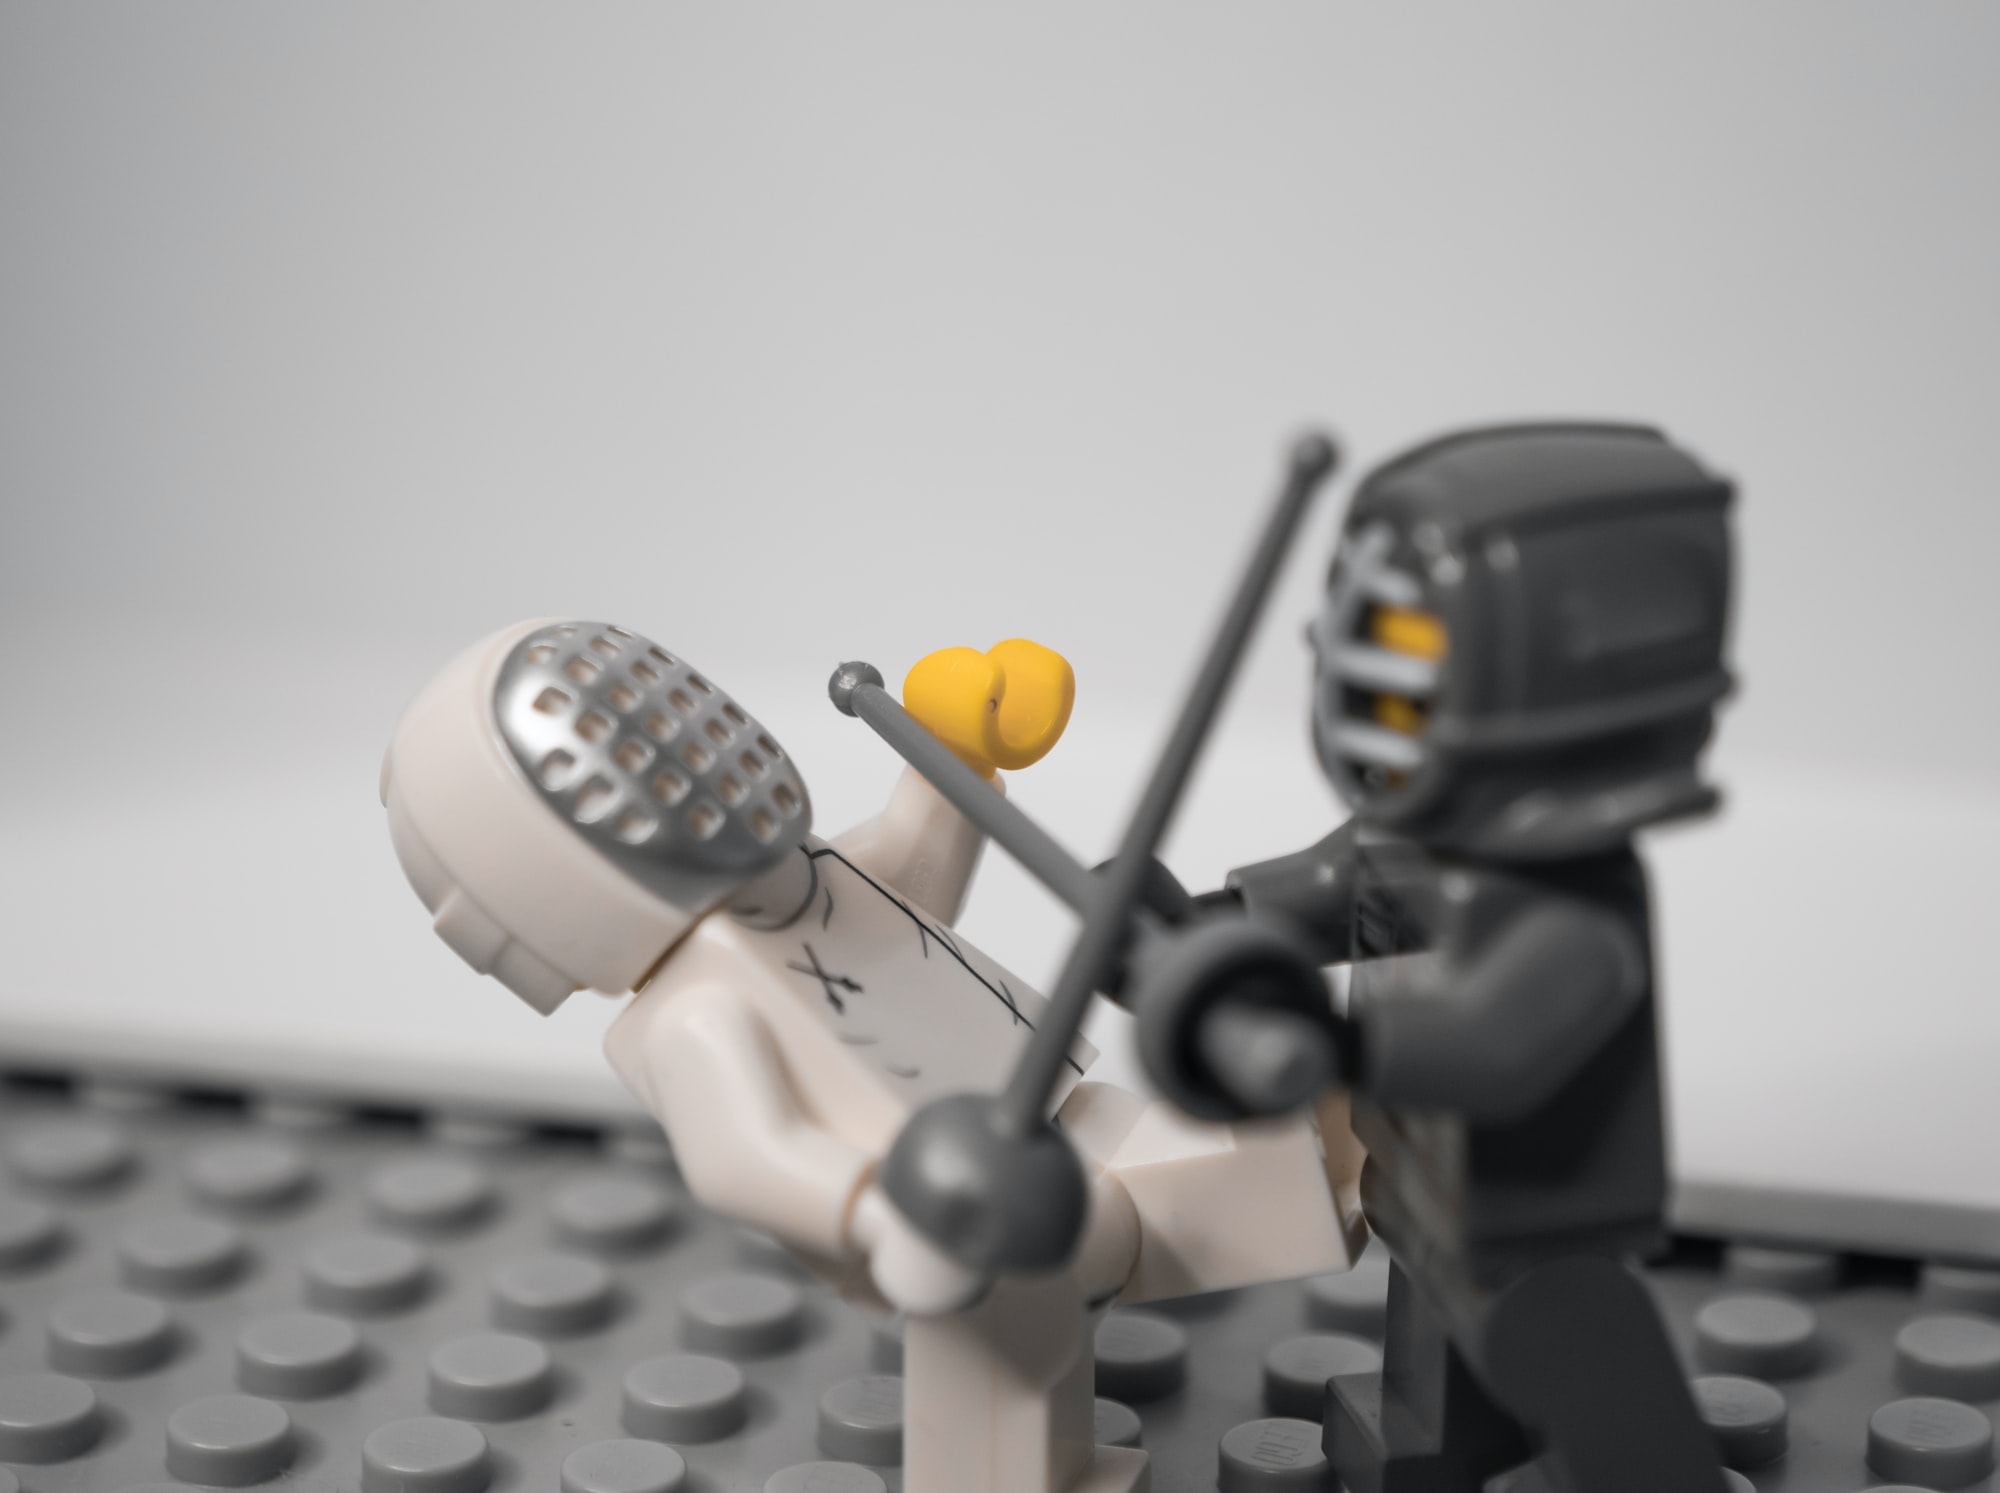 Fencer Lego figures fighting with swords